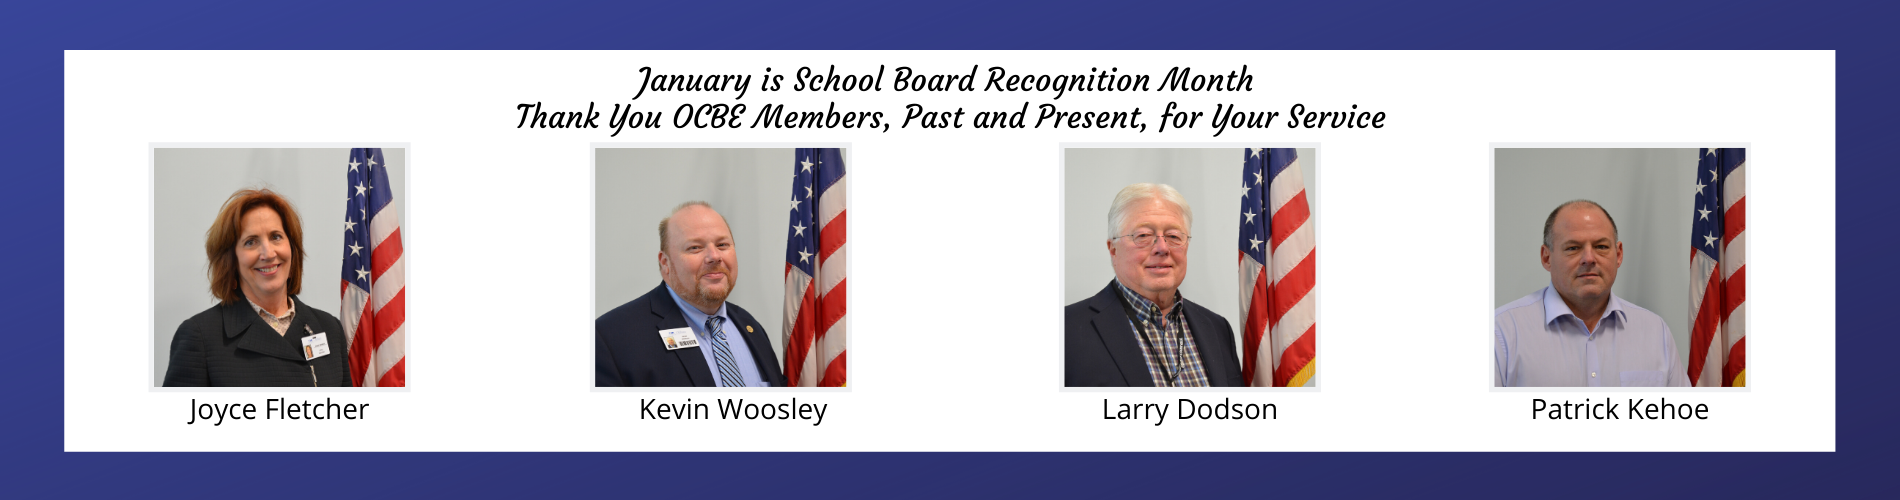 January is school board appreciation month. Thank you OCBE members, past and present, for your service.